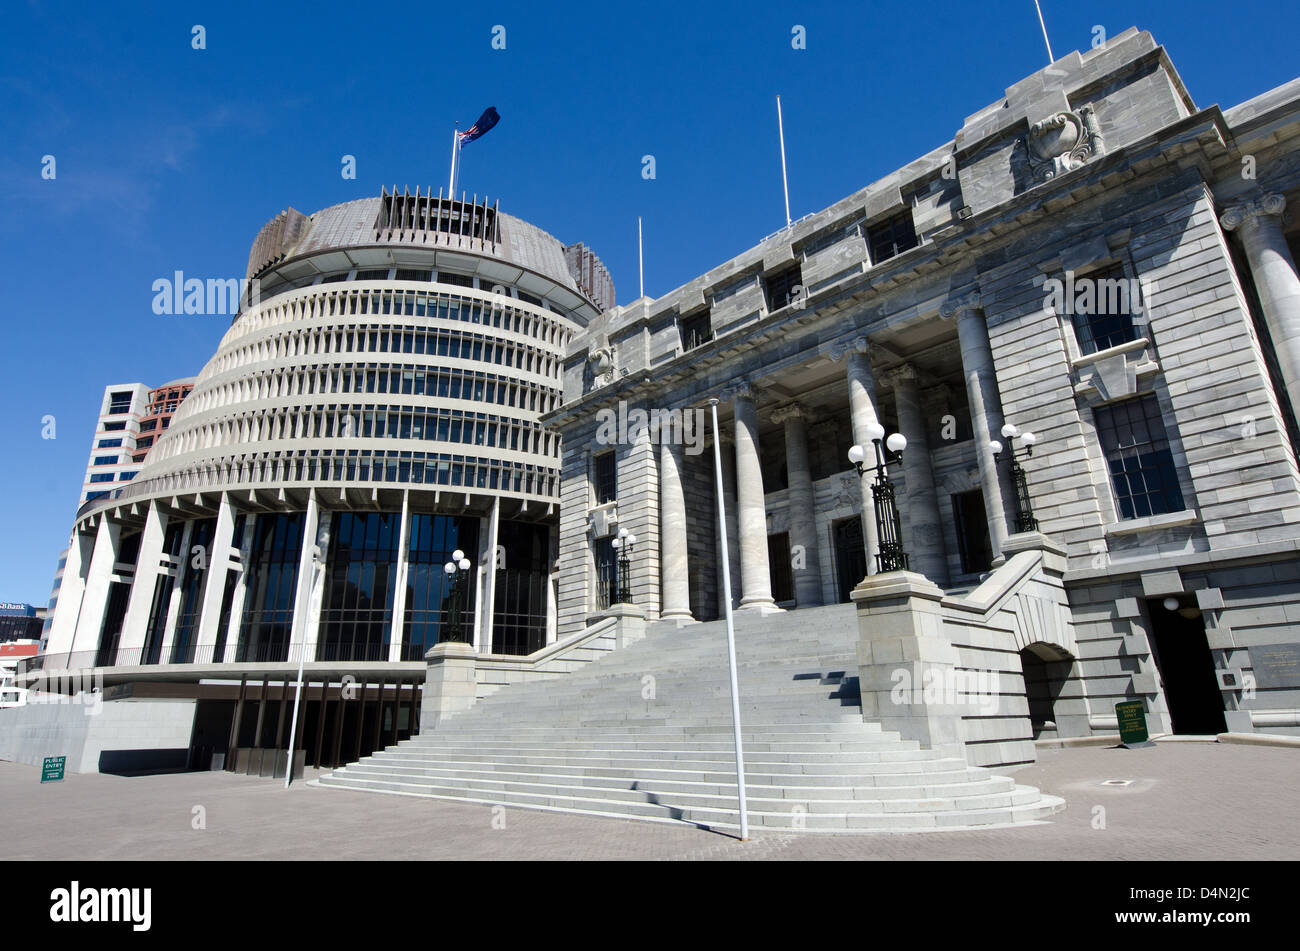 The Beehive building - Parliament of New Zealand in Wellington city. Stock Photo